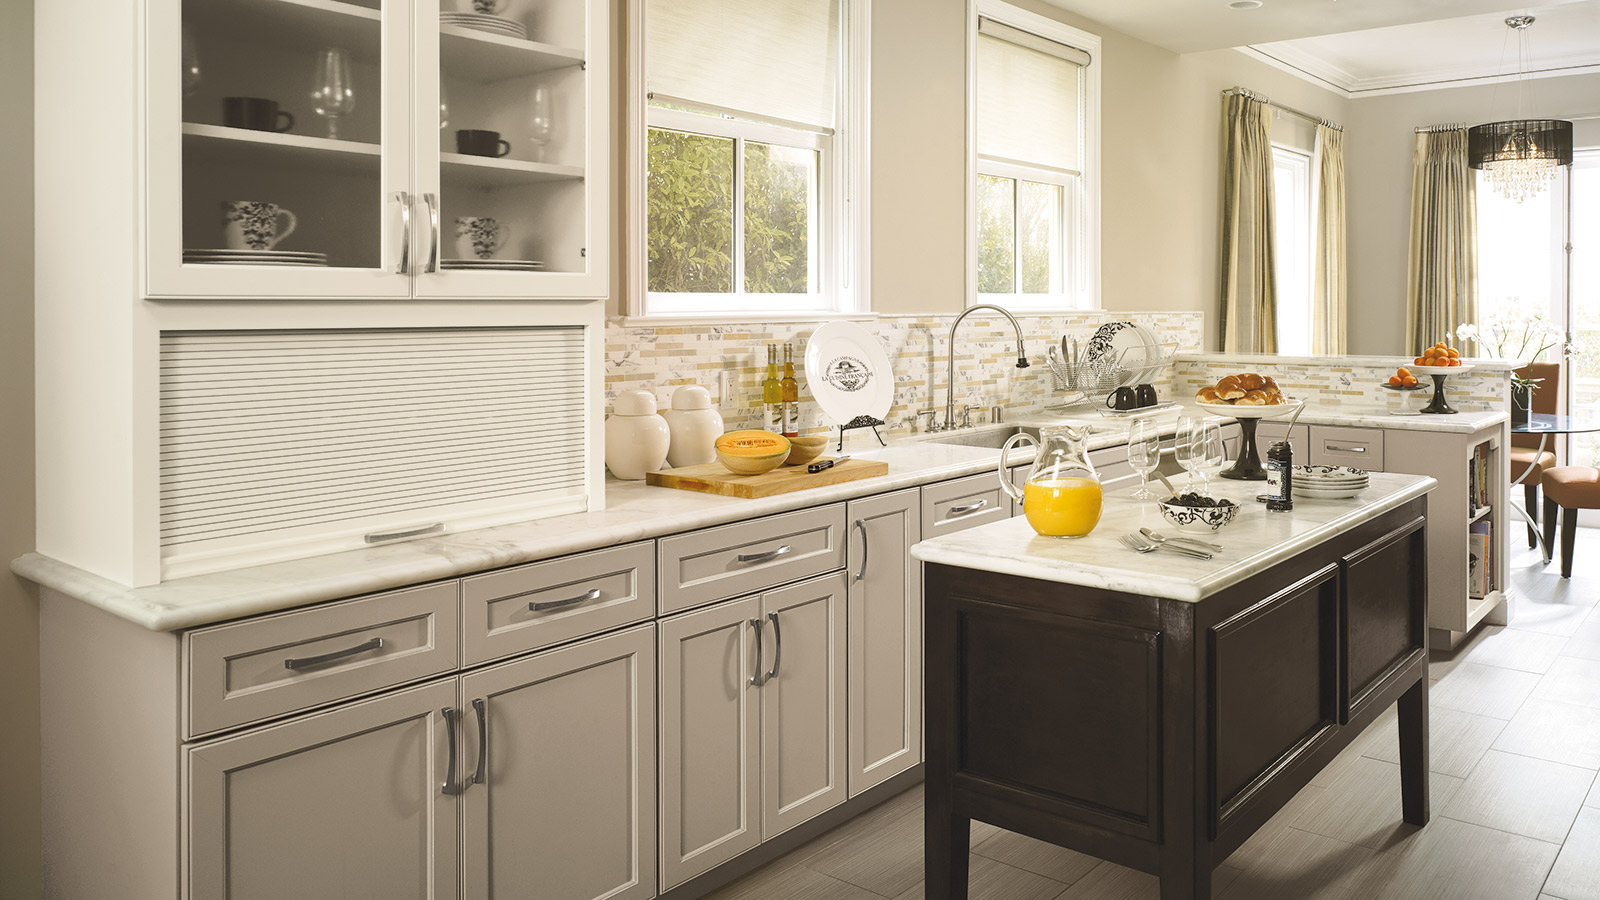 Shaker Kitchen Cabinets with a Neutral Palette - Omega